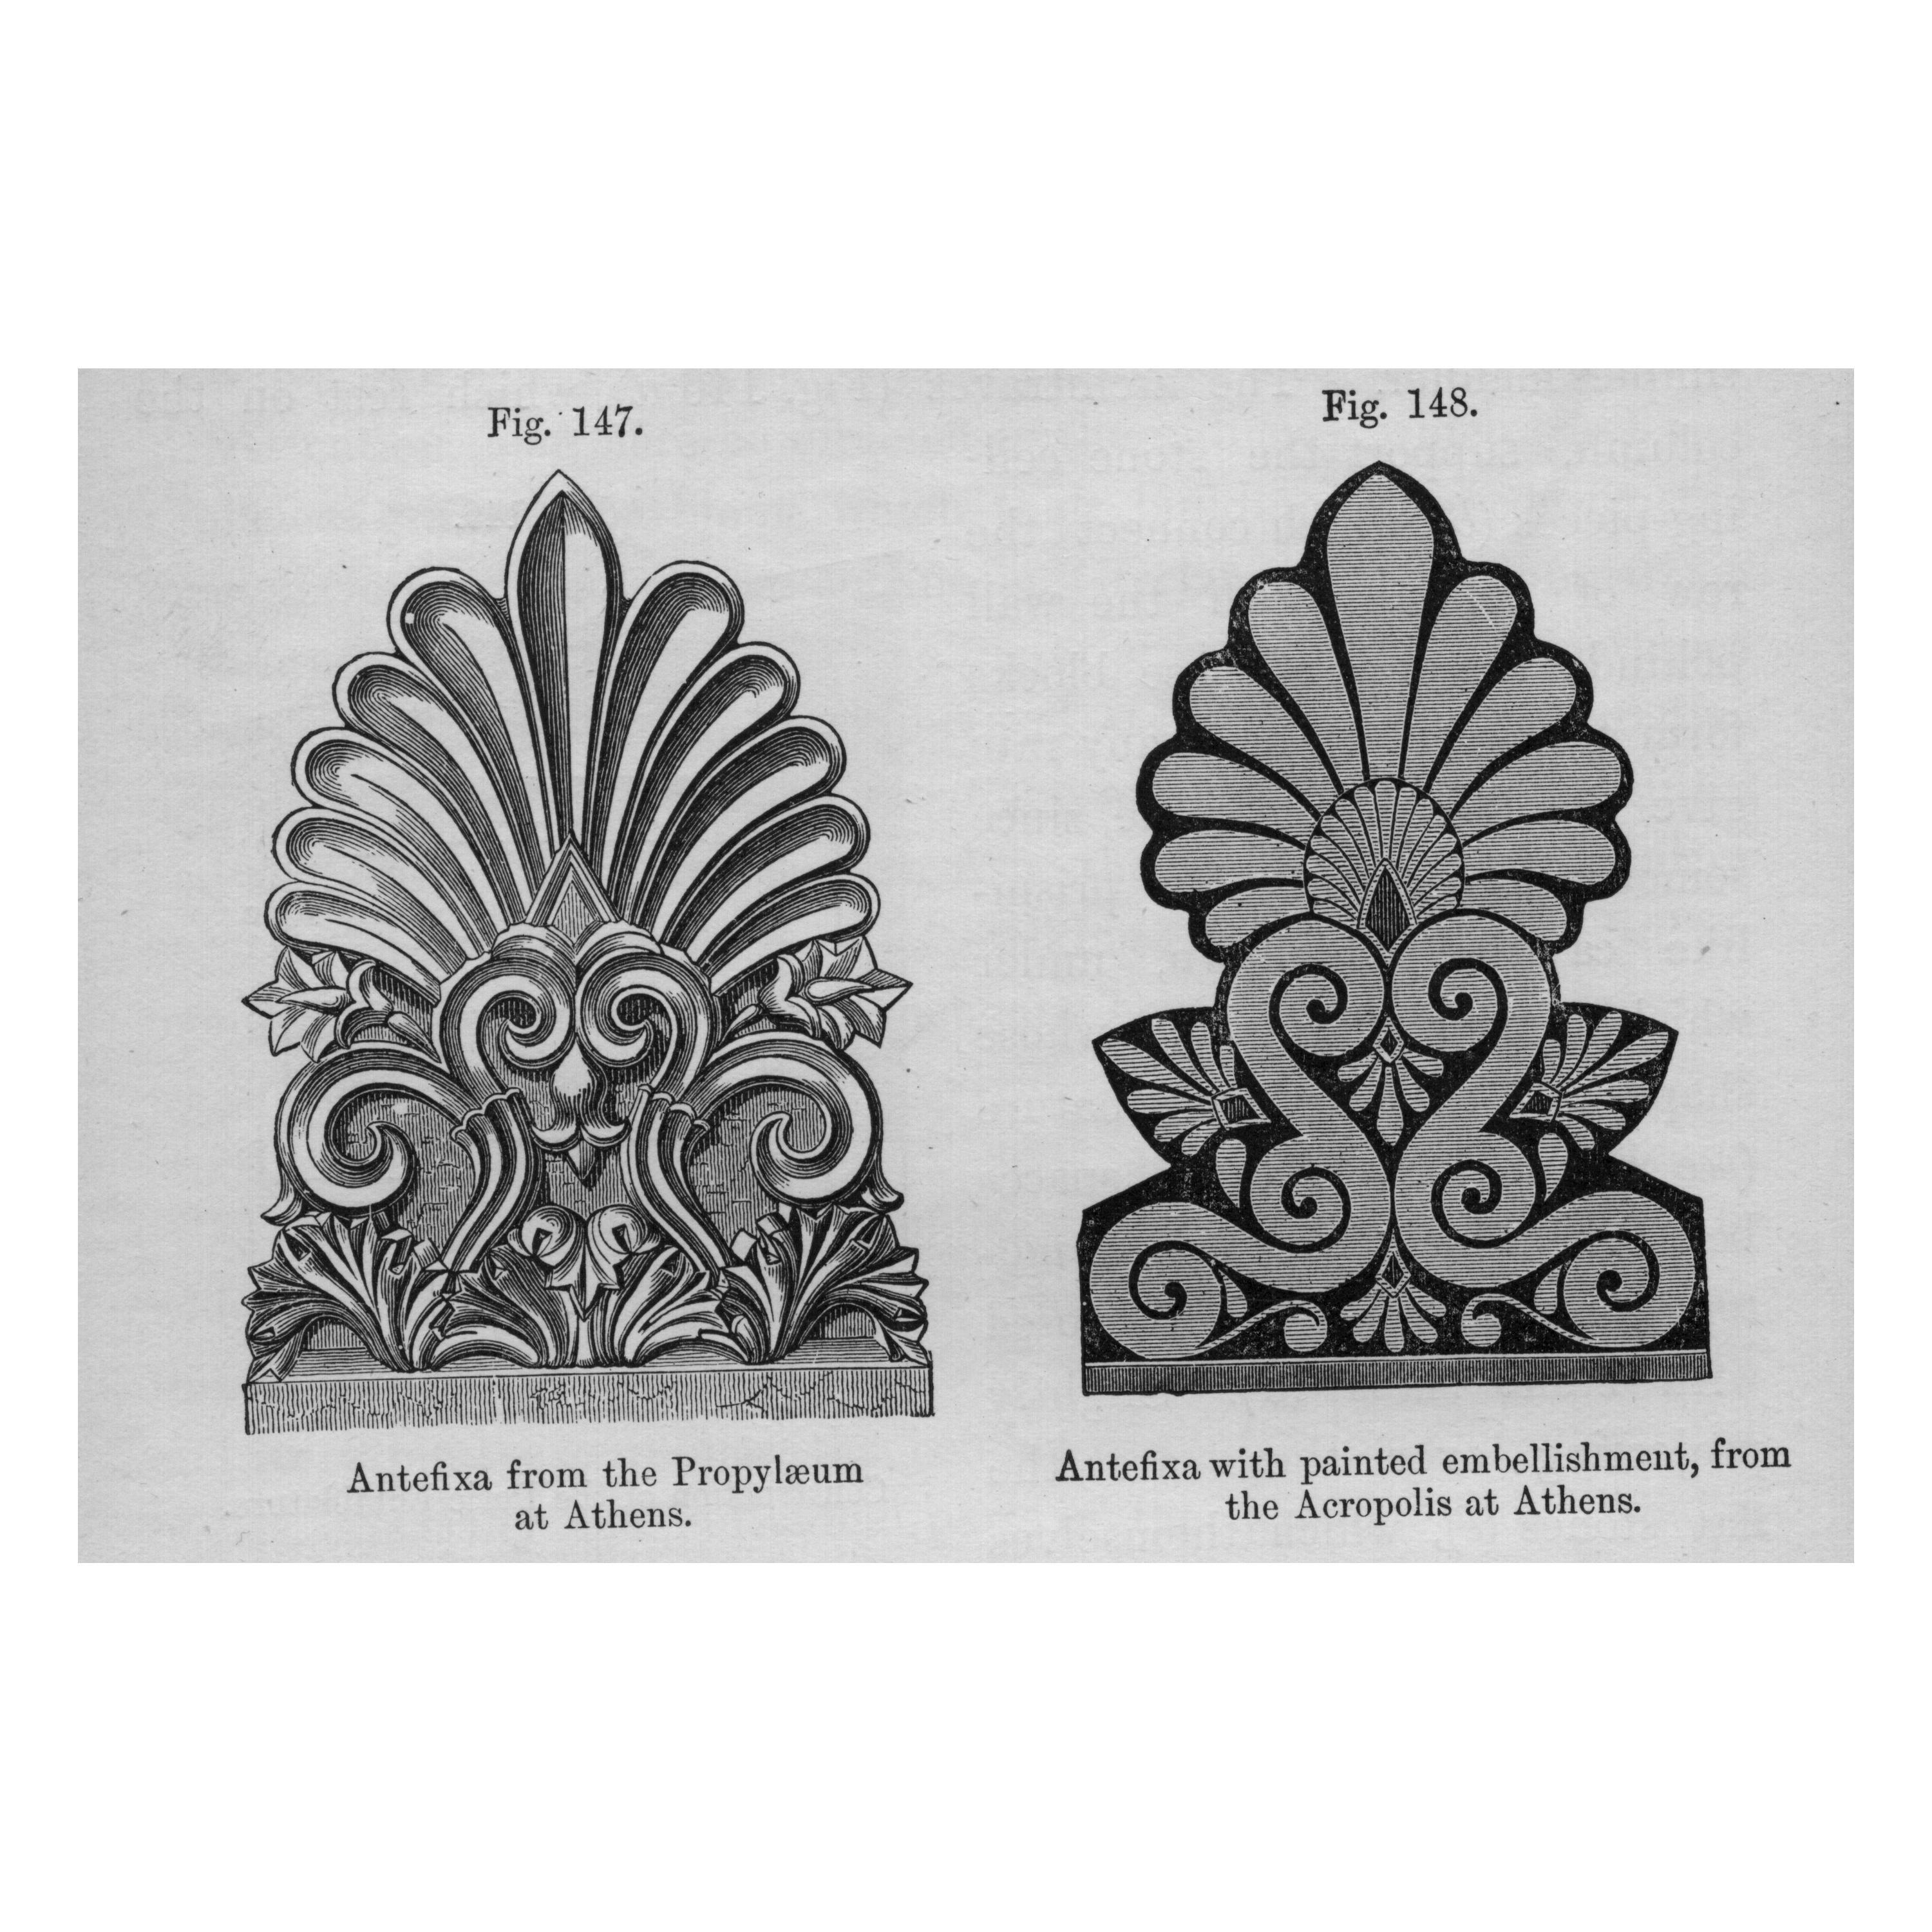 Architectural rendering of Antefix, vertical decorations used to cover the end of roof tiling, often used in Grecian temples.